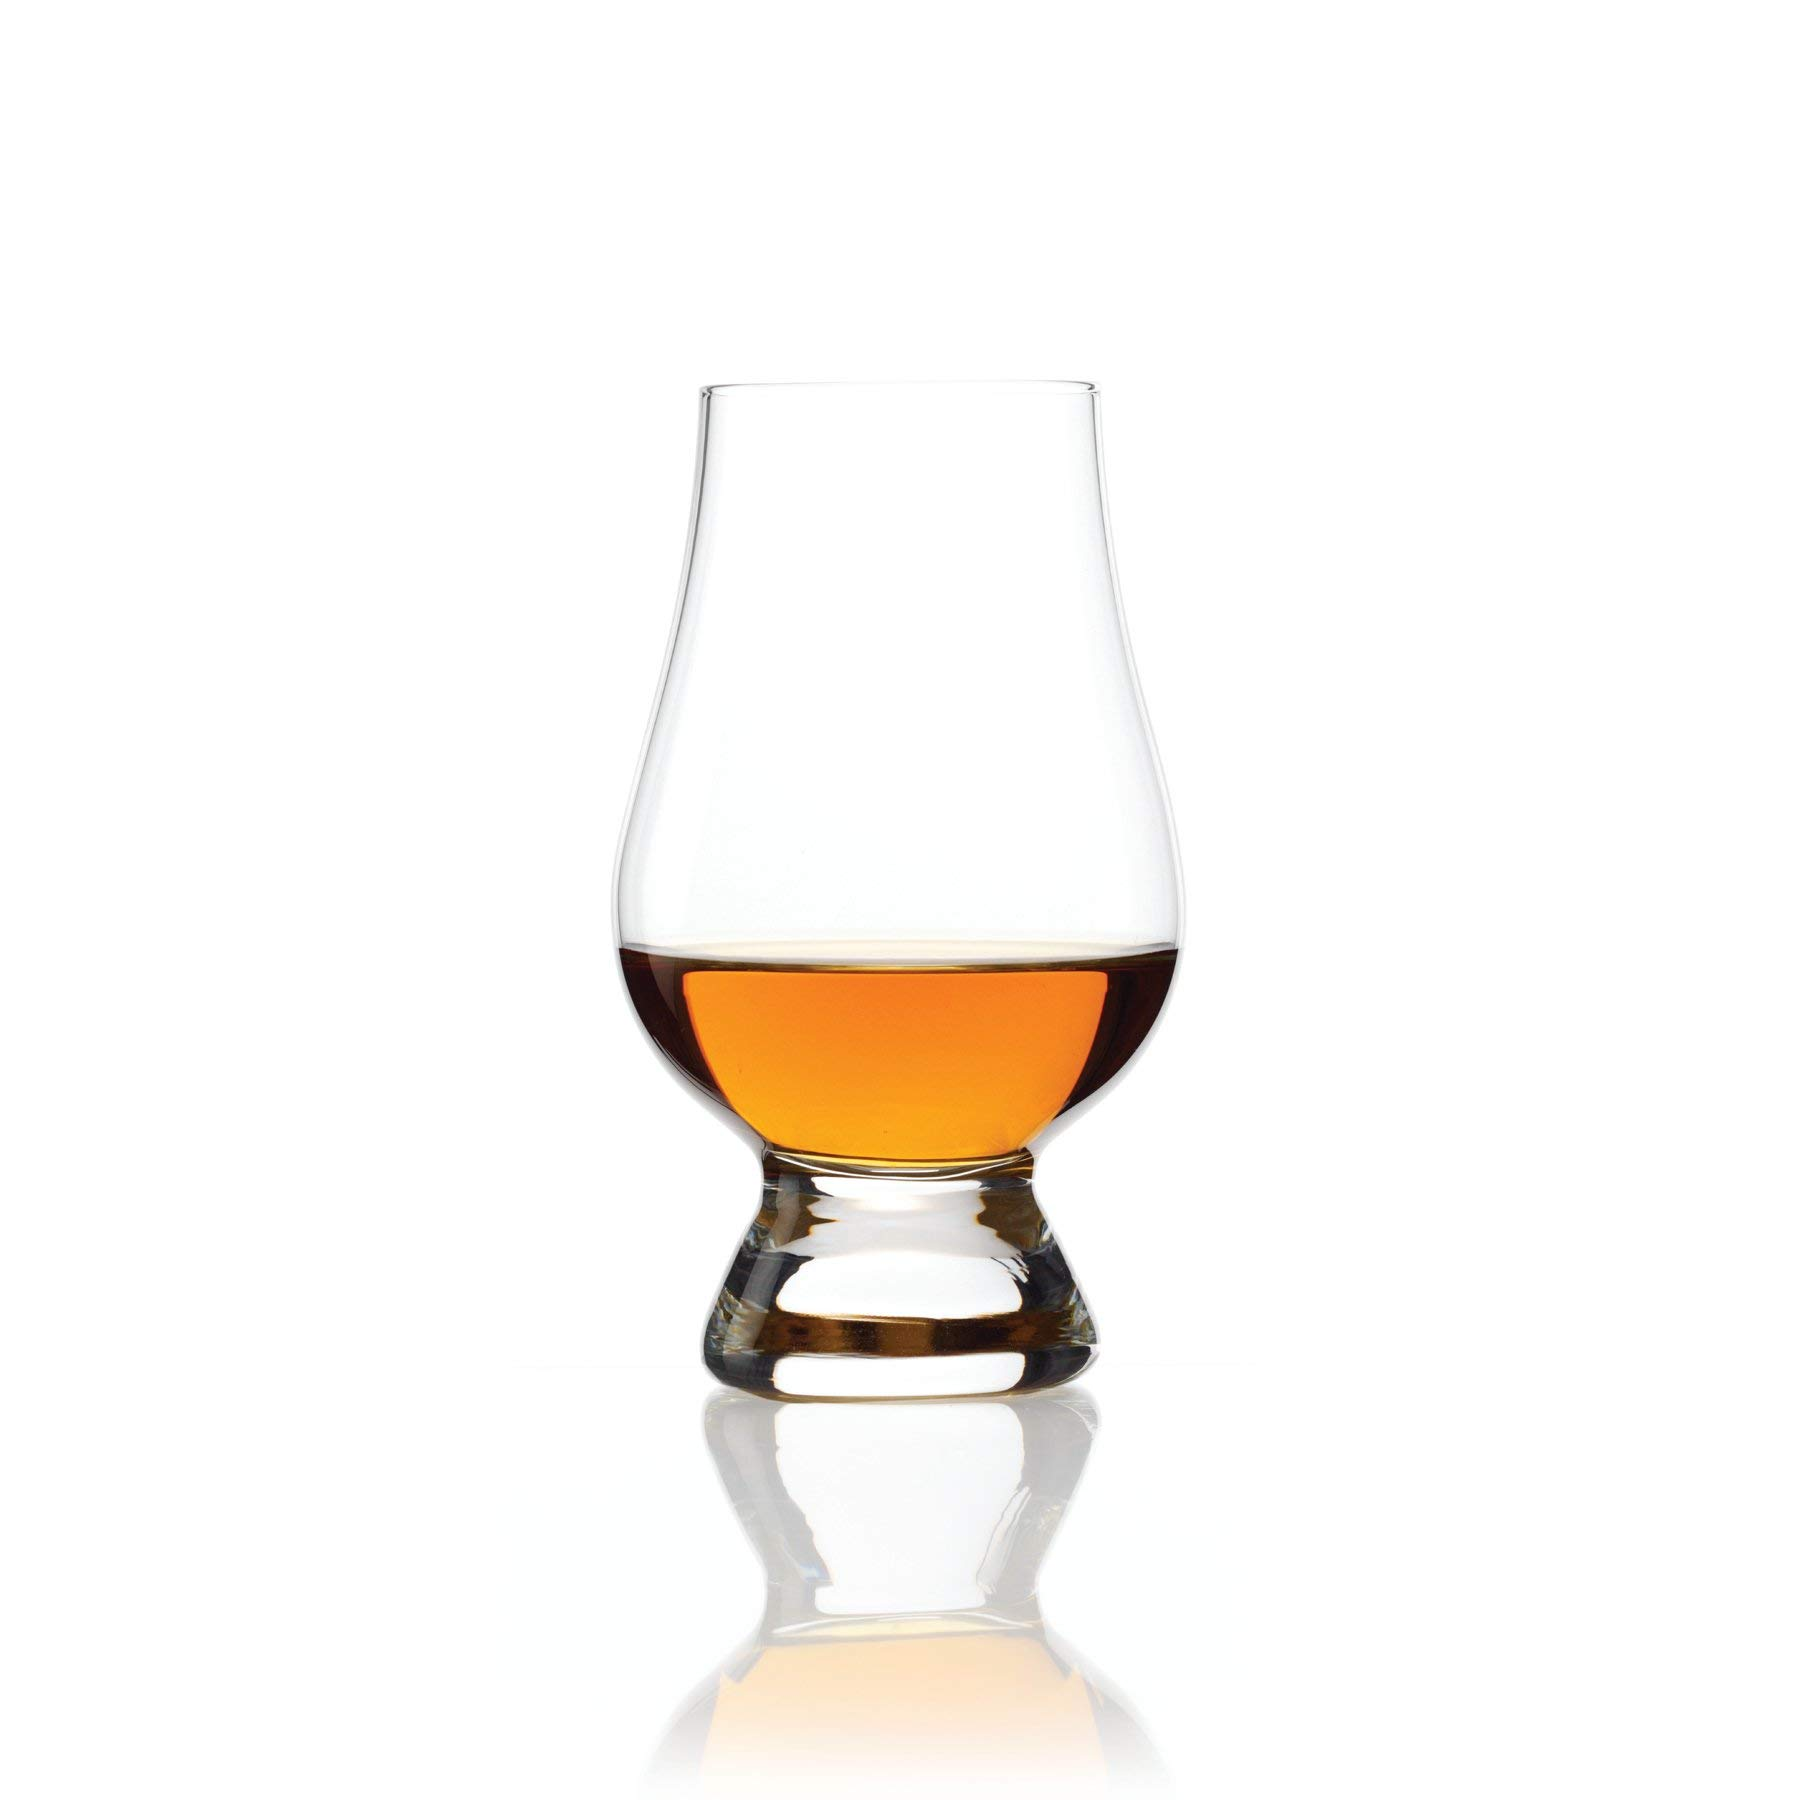 Glencairn Whisky Glass Set of 6 by Glencairn (Image #1)